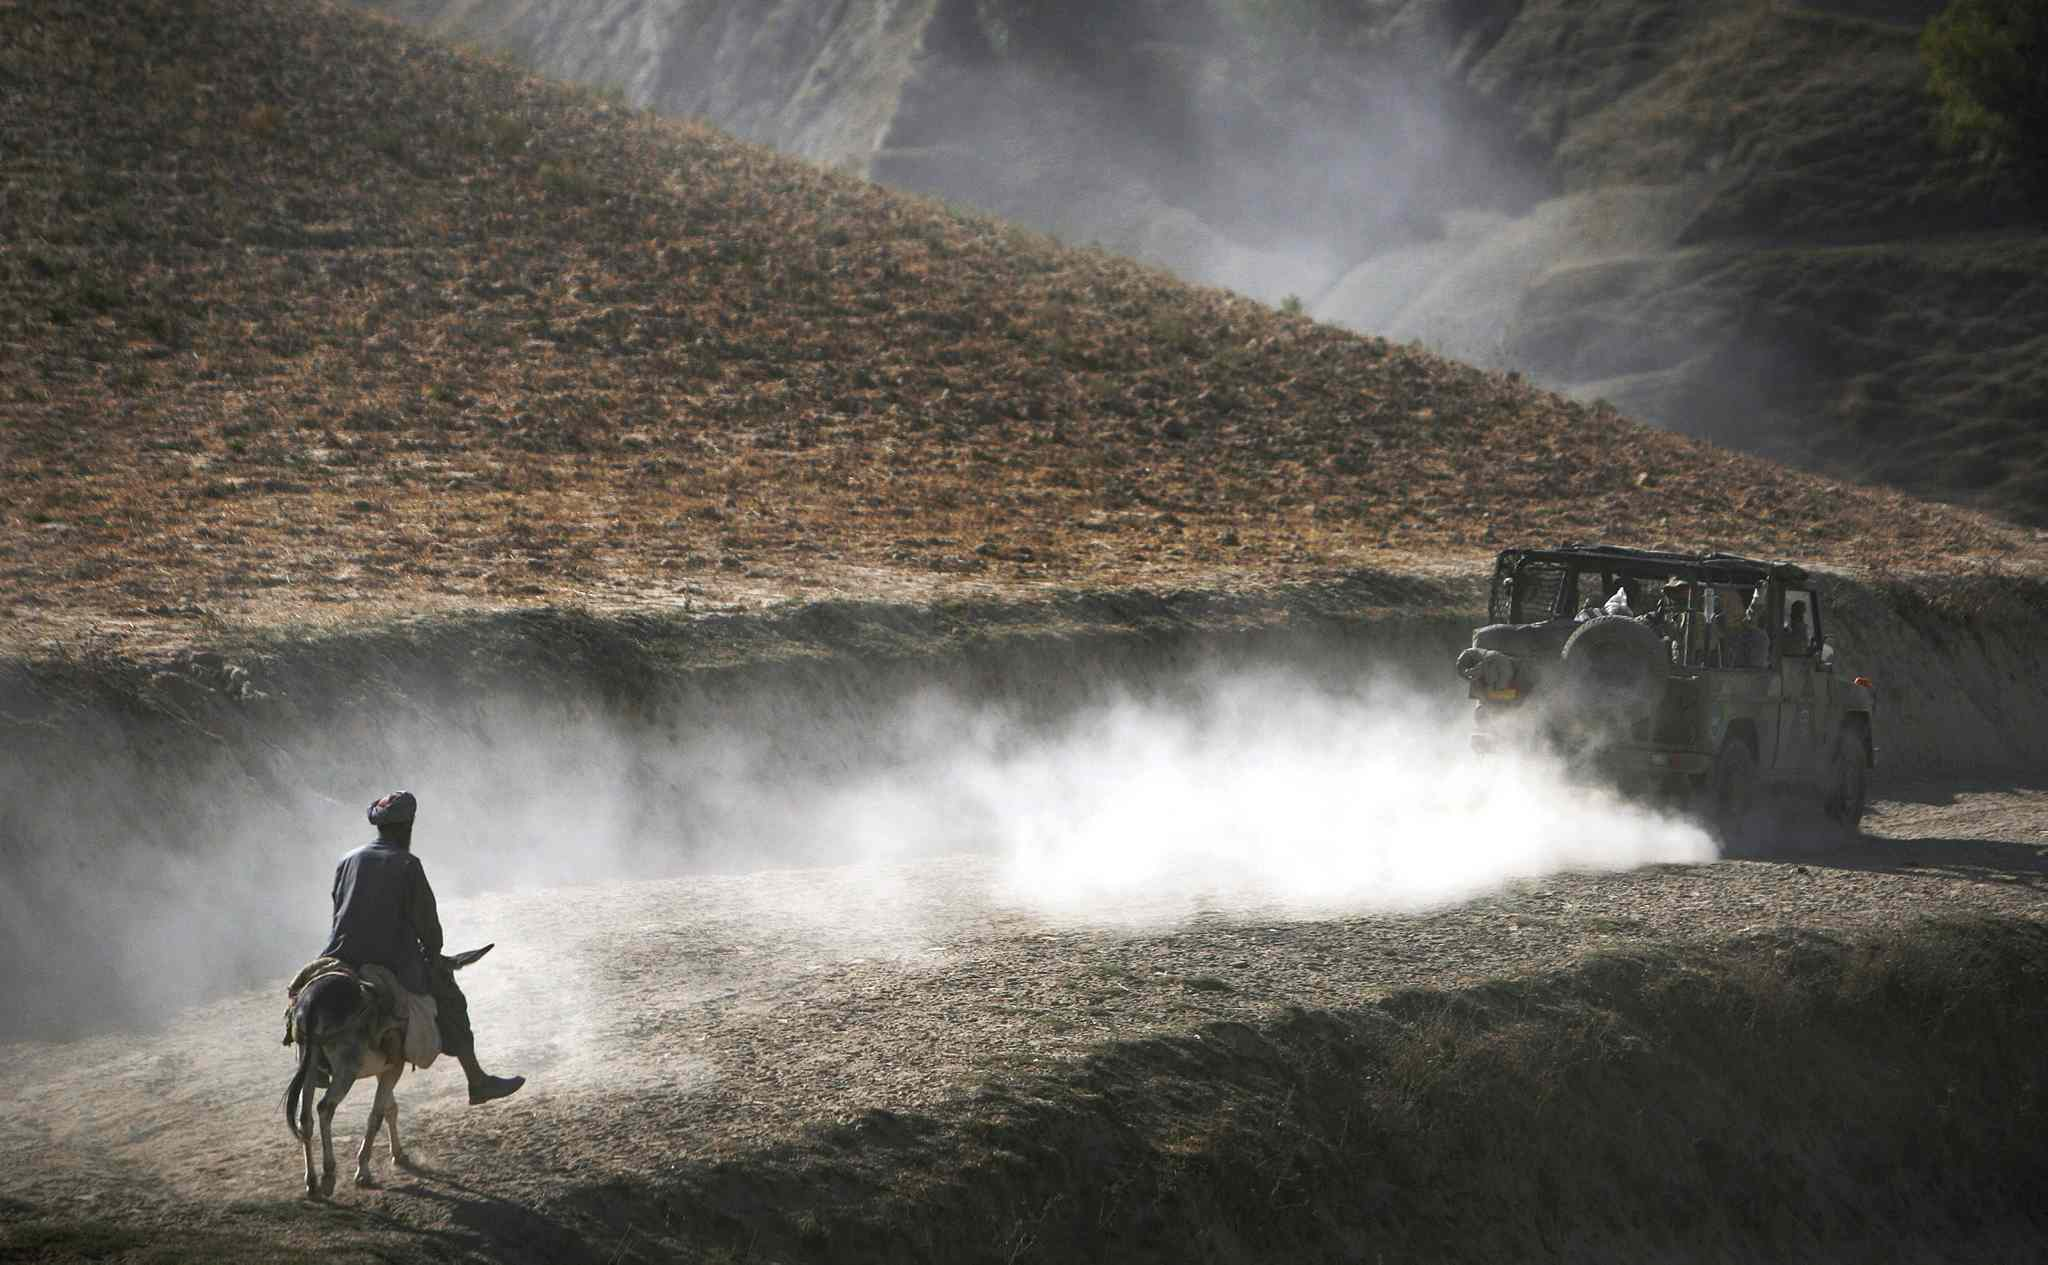 Sept. 15, 2009: An Afghan man on his donkey follows a convoy of German ISAF soldiers patrolling Yaftal E Sofla, in the mountainous region of Feyzabad, east of Kunduz, Afghanistan.